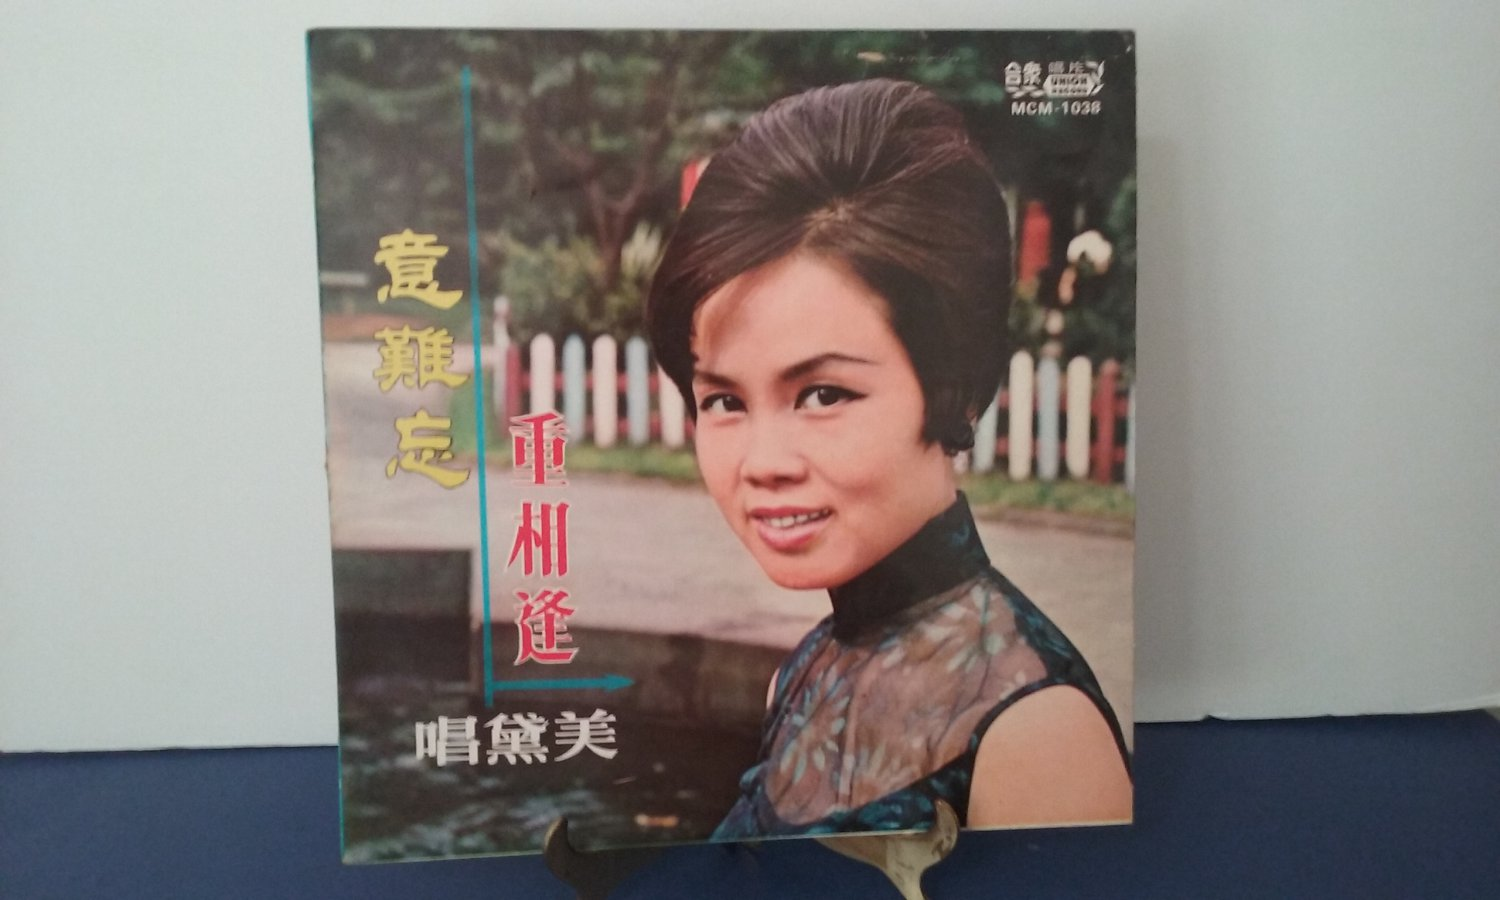 Extremely Rare Taiwan Pressing - Mei Dai - Unforgettable  - Circa 1968